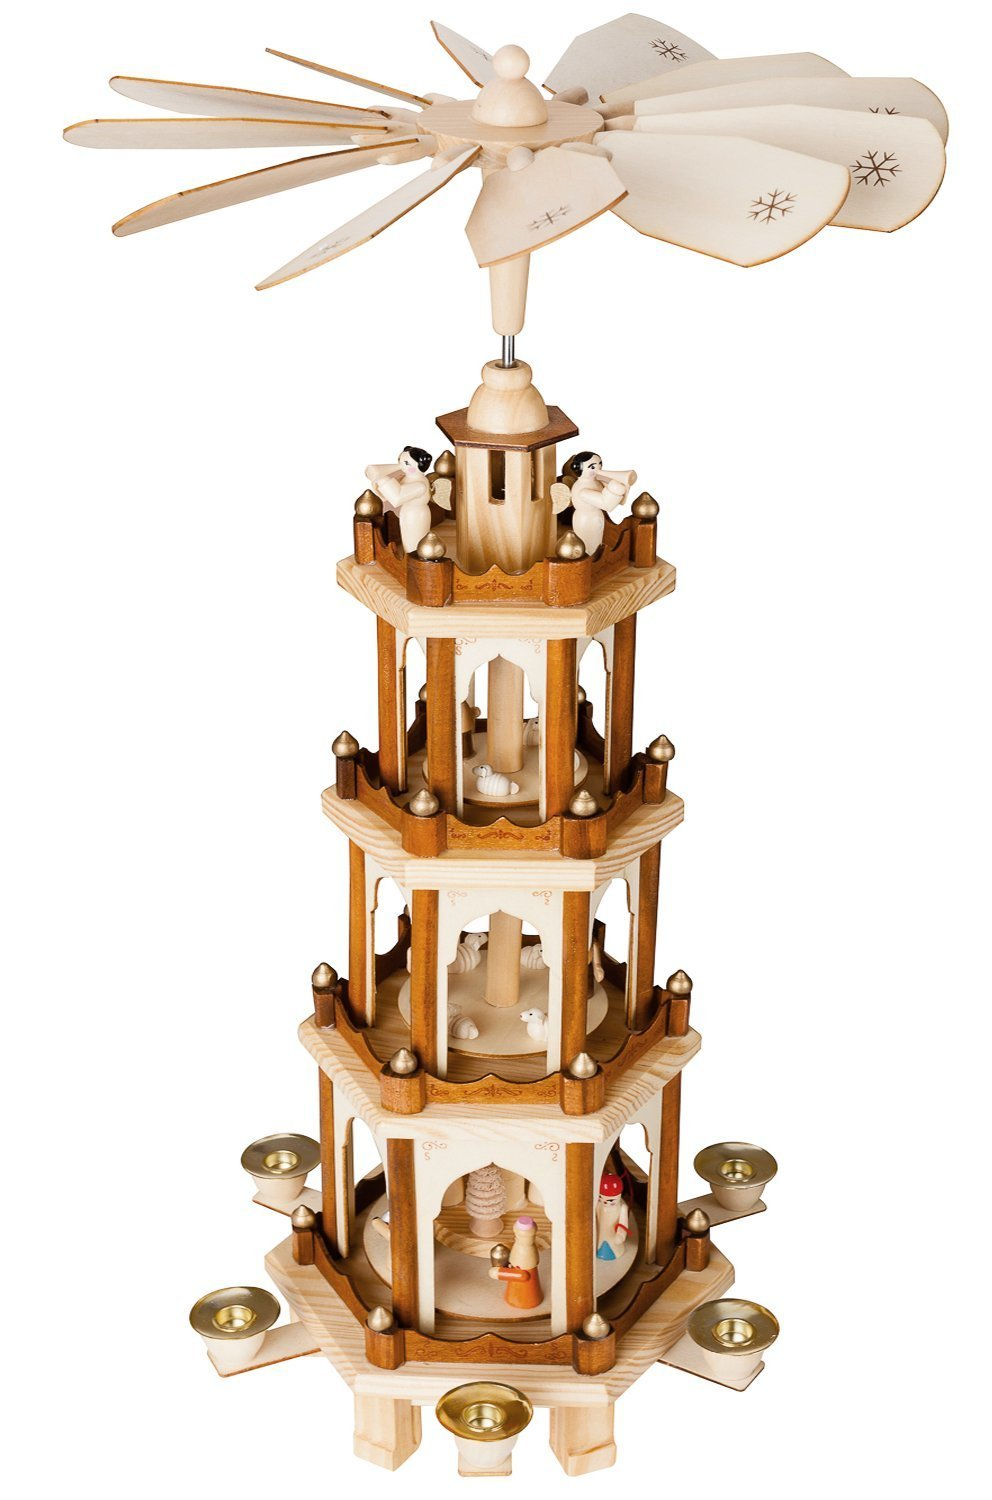 BRUBAKER Christmas Pyramid - 24 Inches - 4 Tier Carousel with 6 Candle Holder and Hand Painted Figurines - Designed in GERMANY - Nativity Set, Decoration